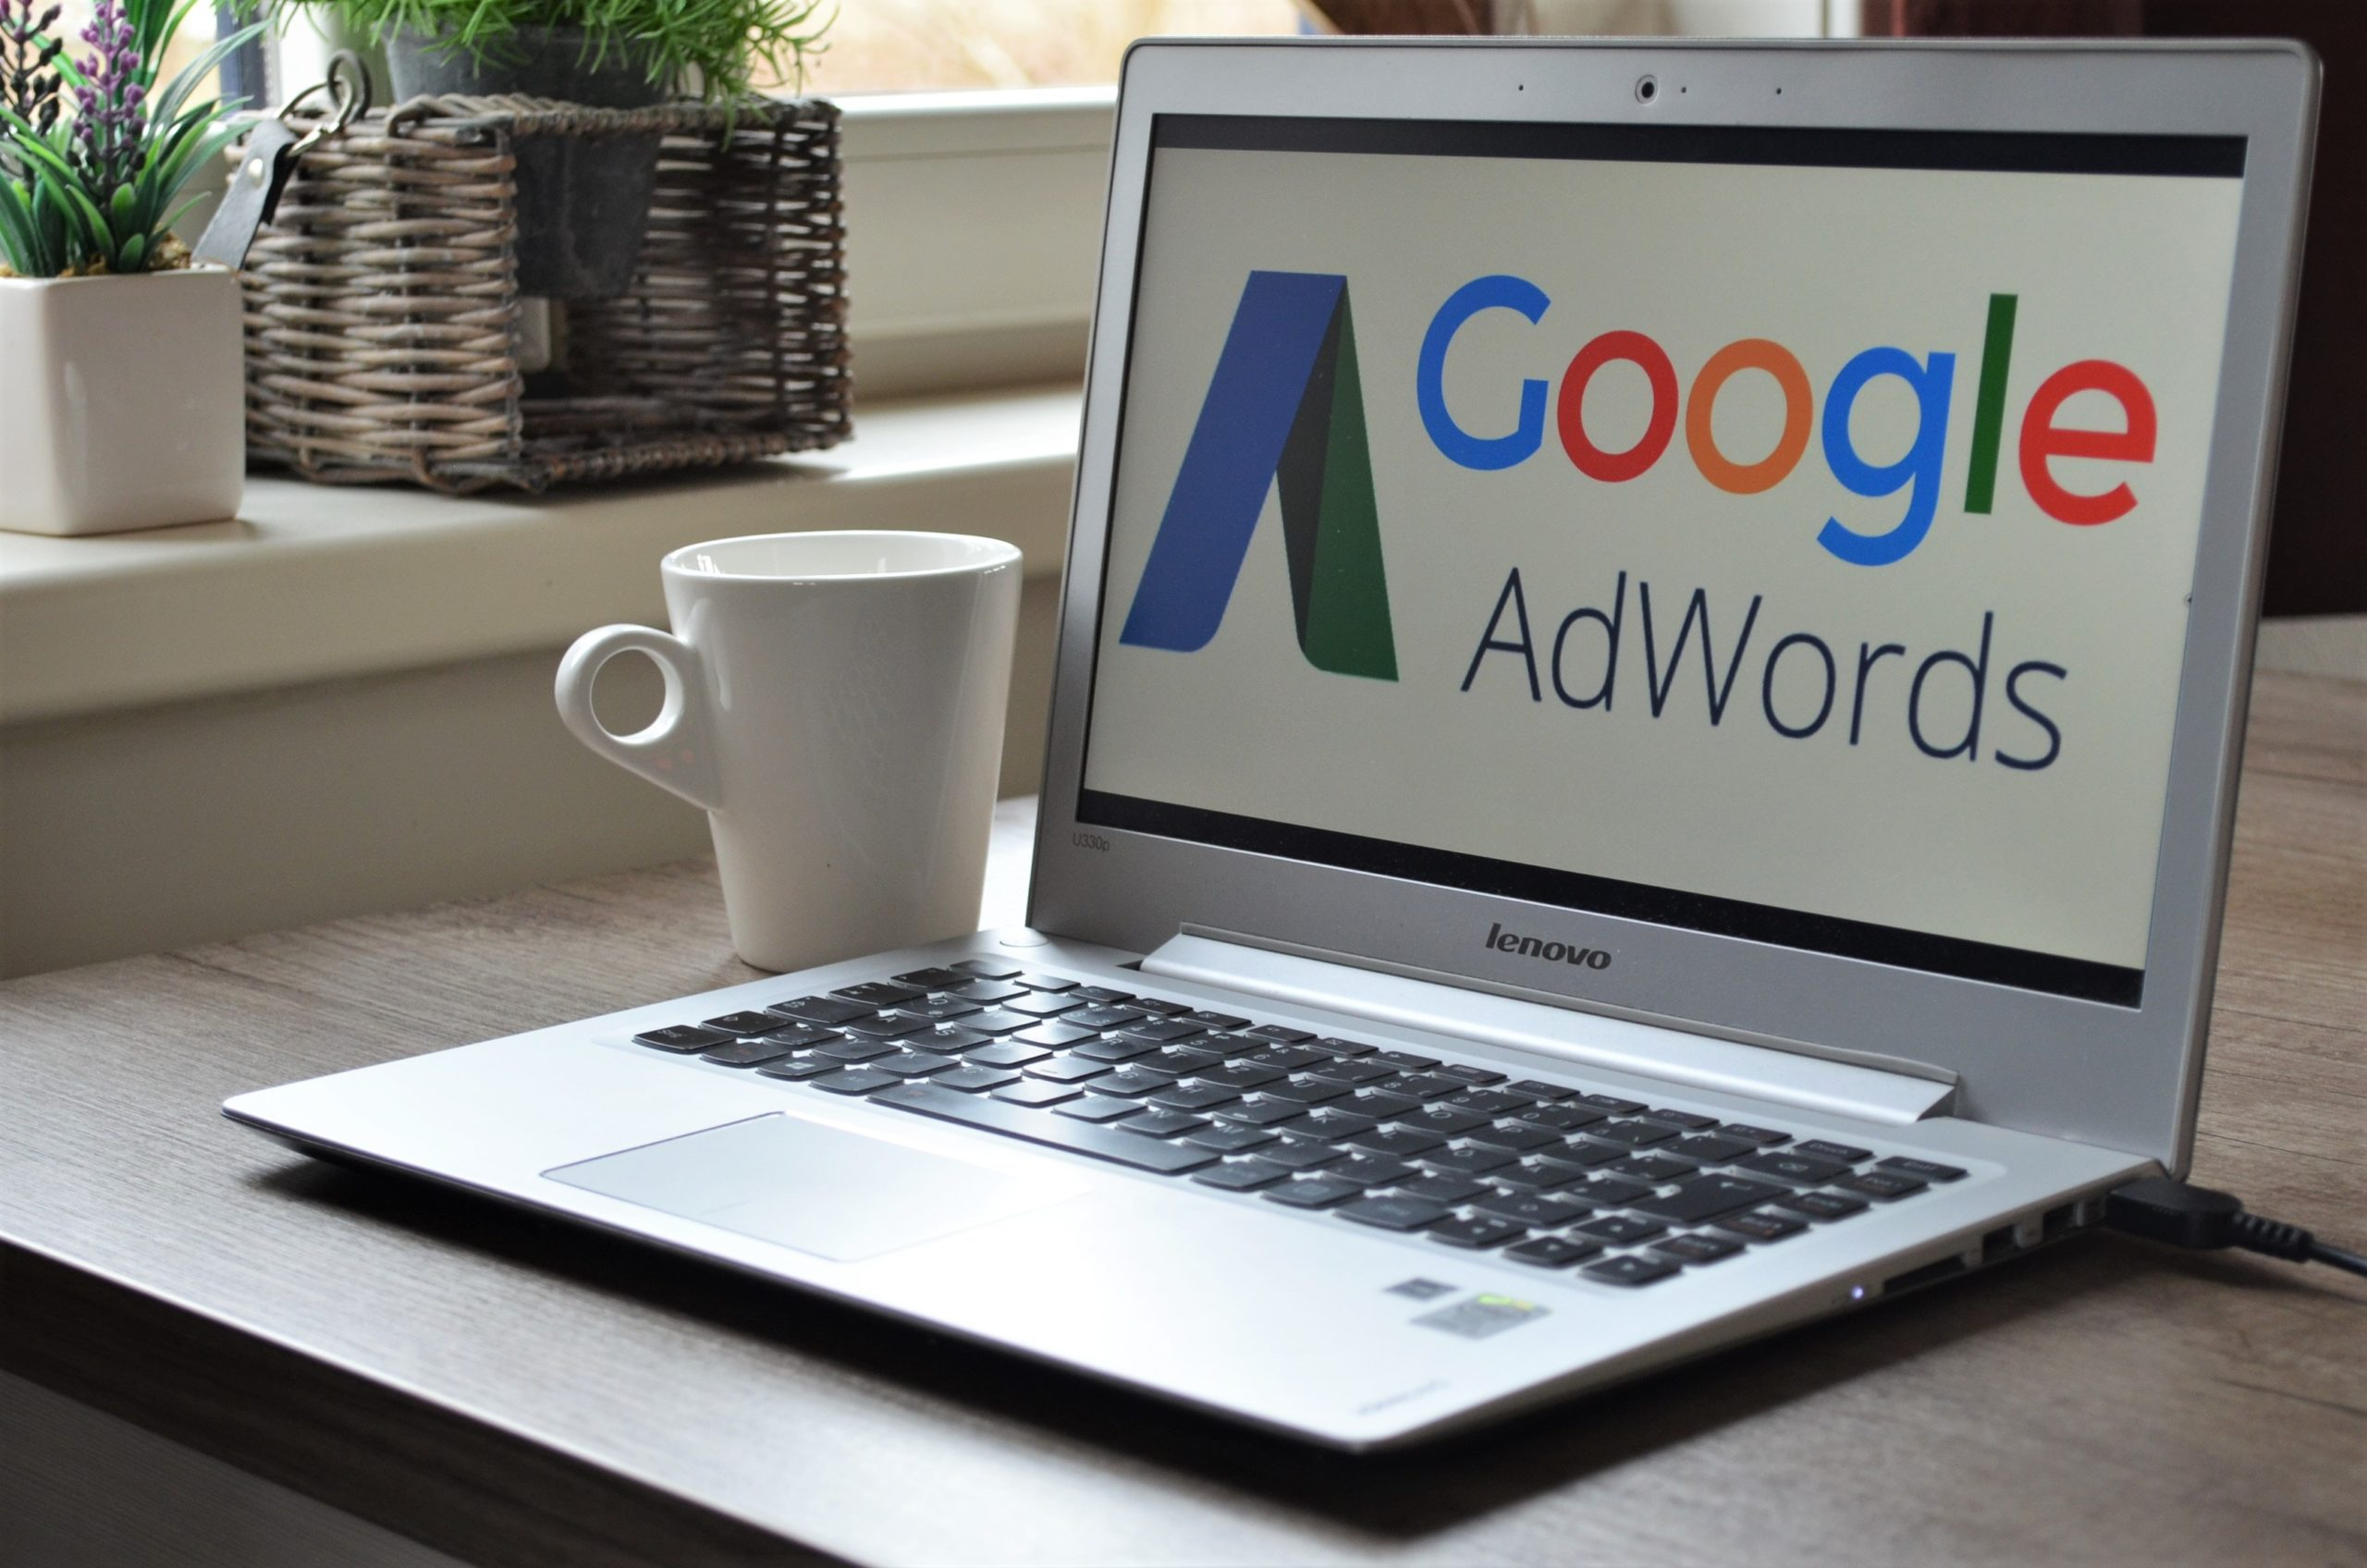 Google launched new advertising functionality